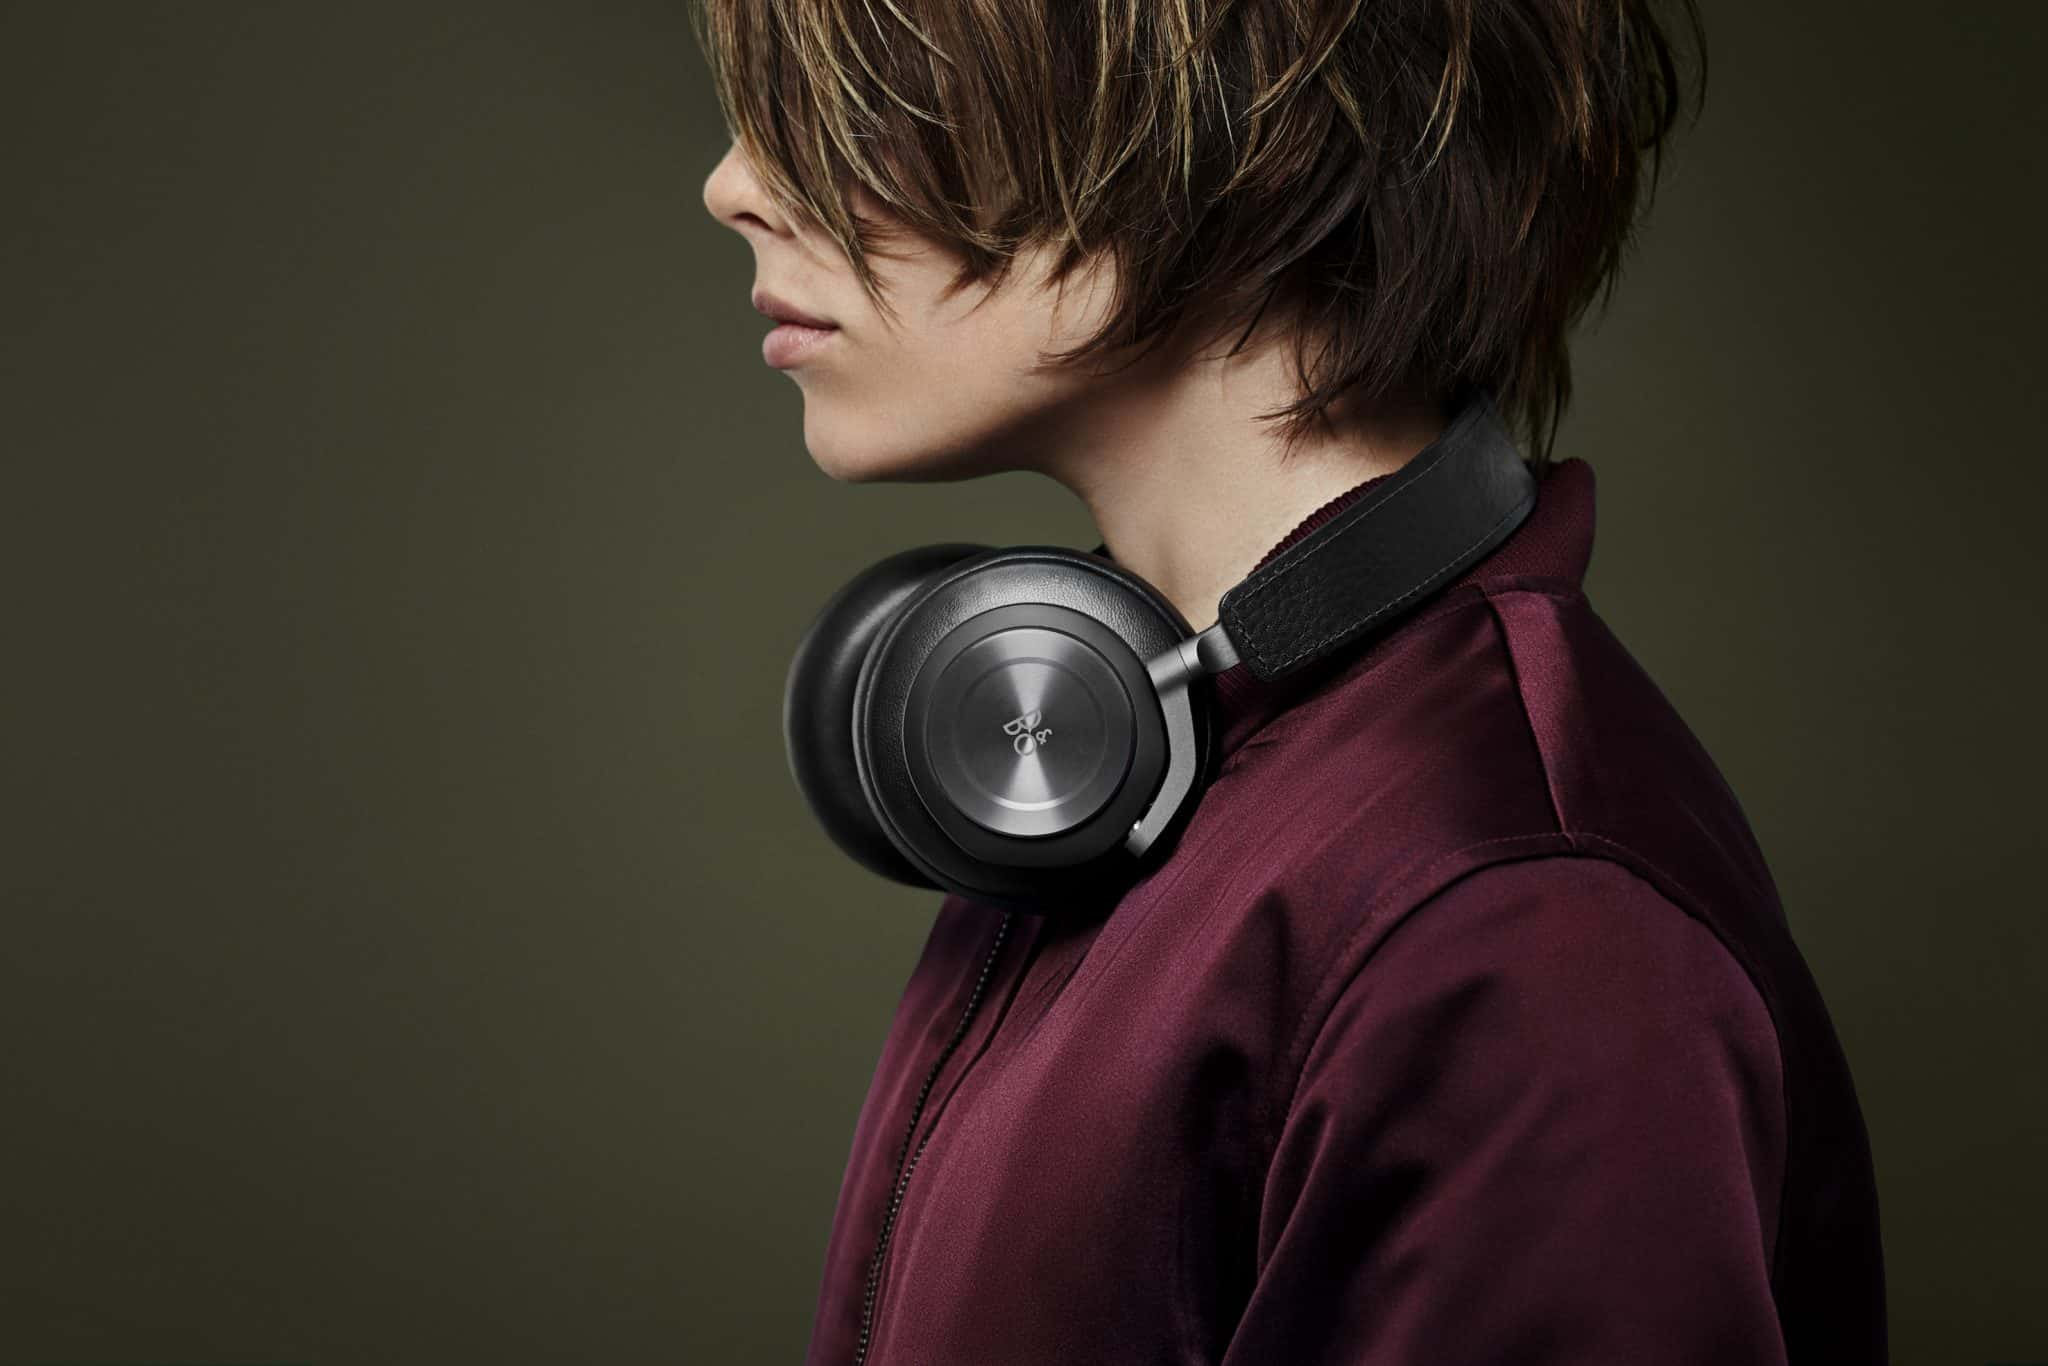 Play: Bang & Olufsen's BeoPlay H7